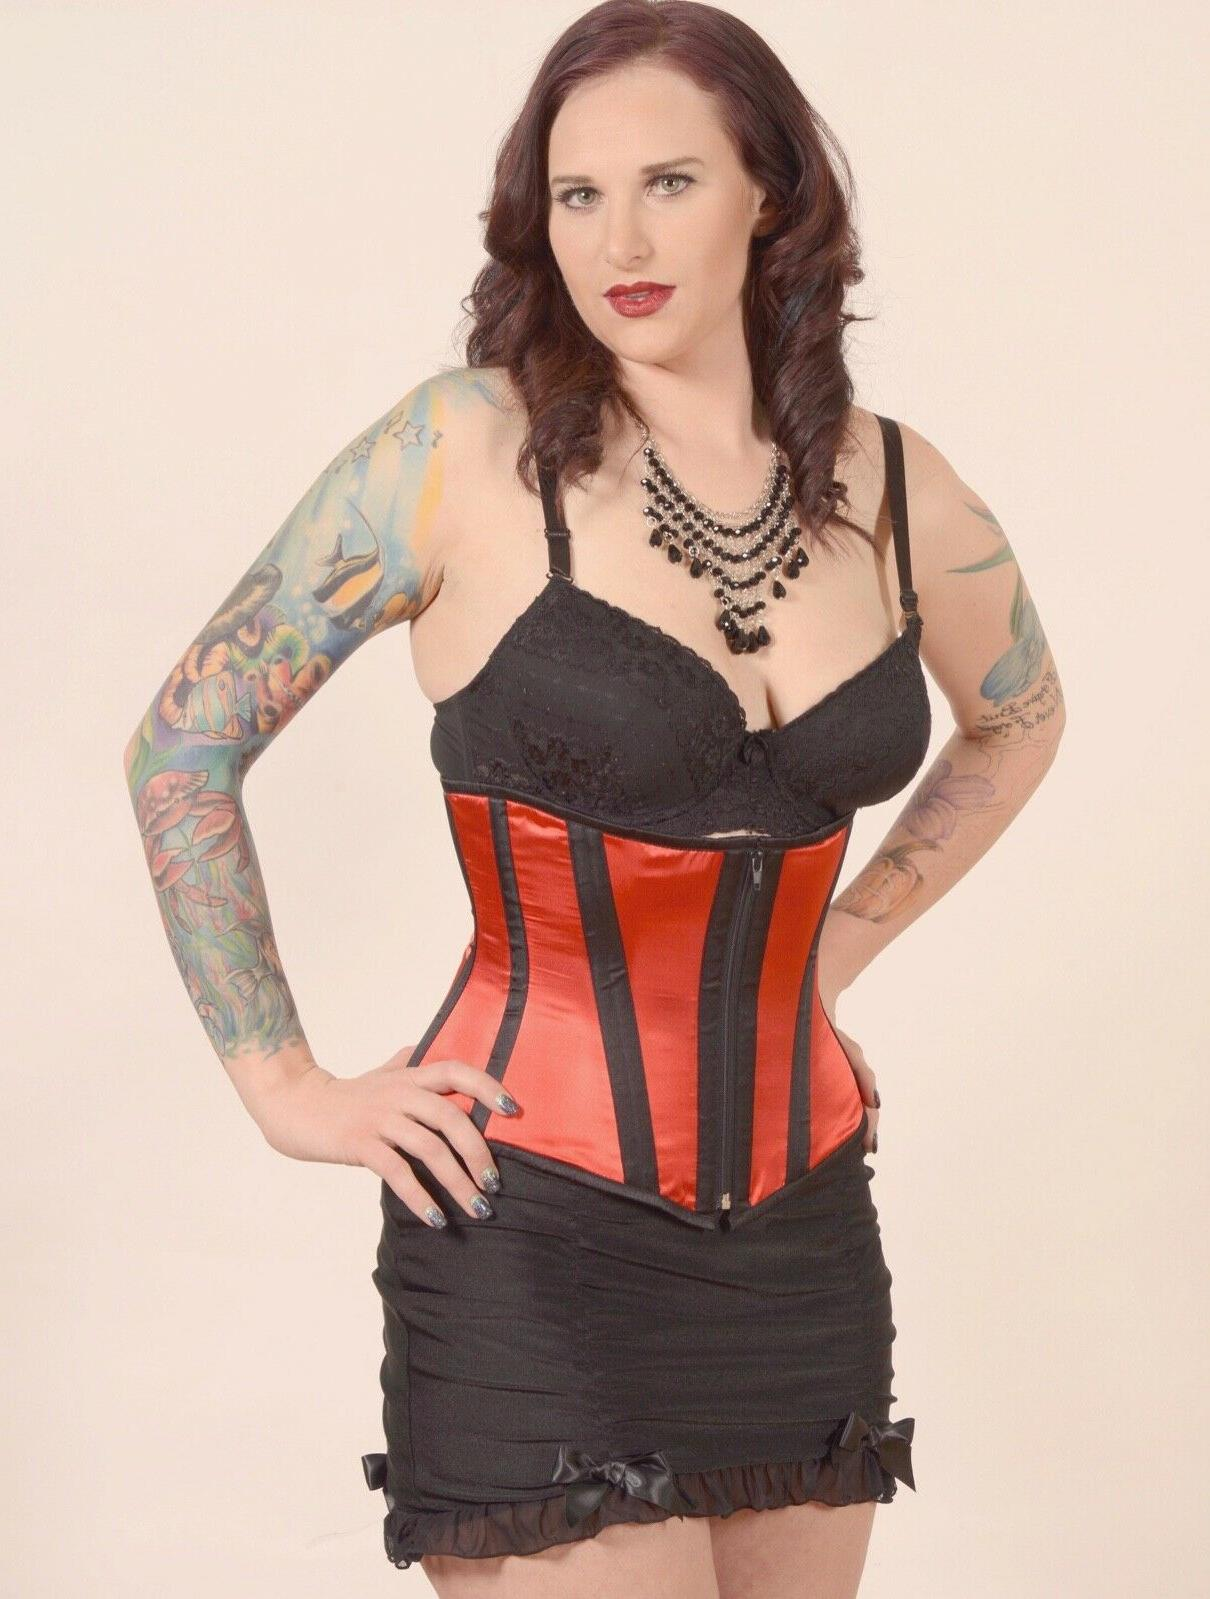 Under Corset TRAVEL for Tight